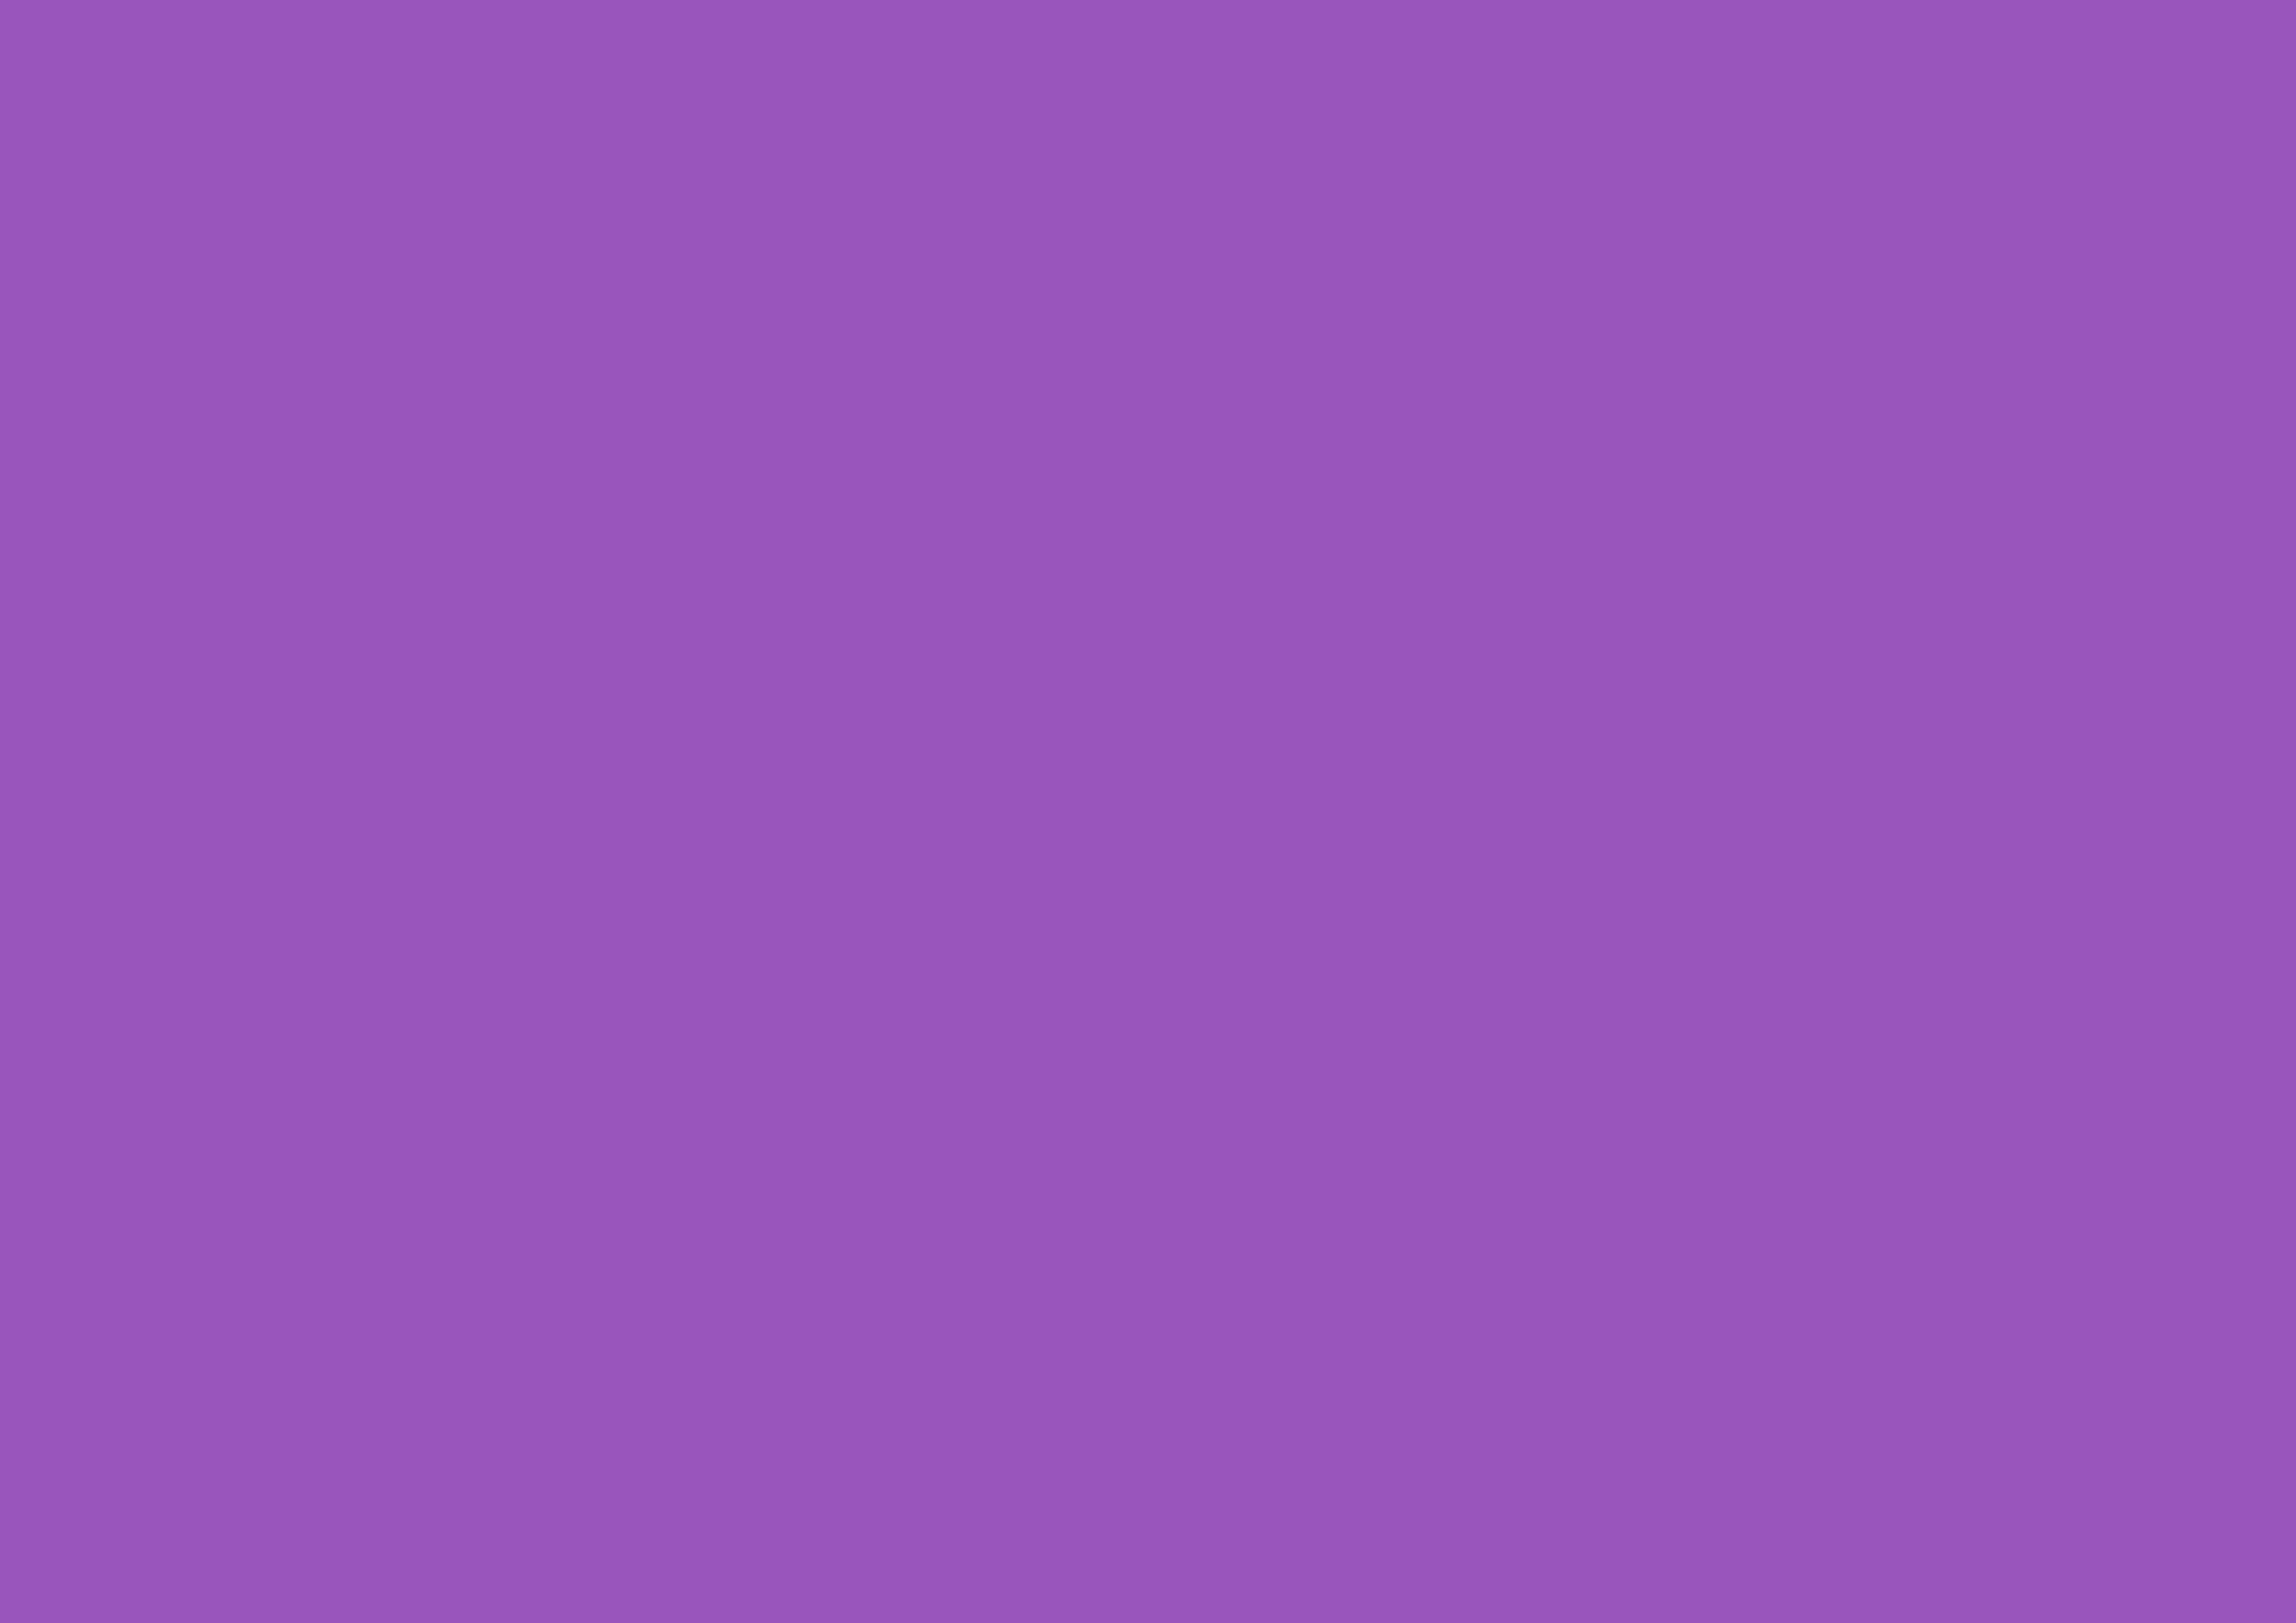 3508x2480 Deep Lilac Solid Color Background